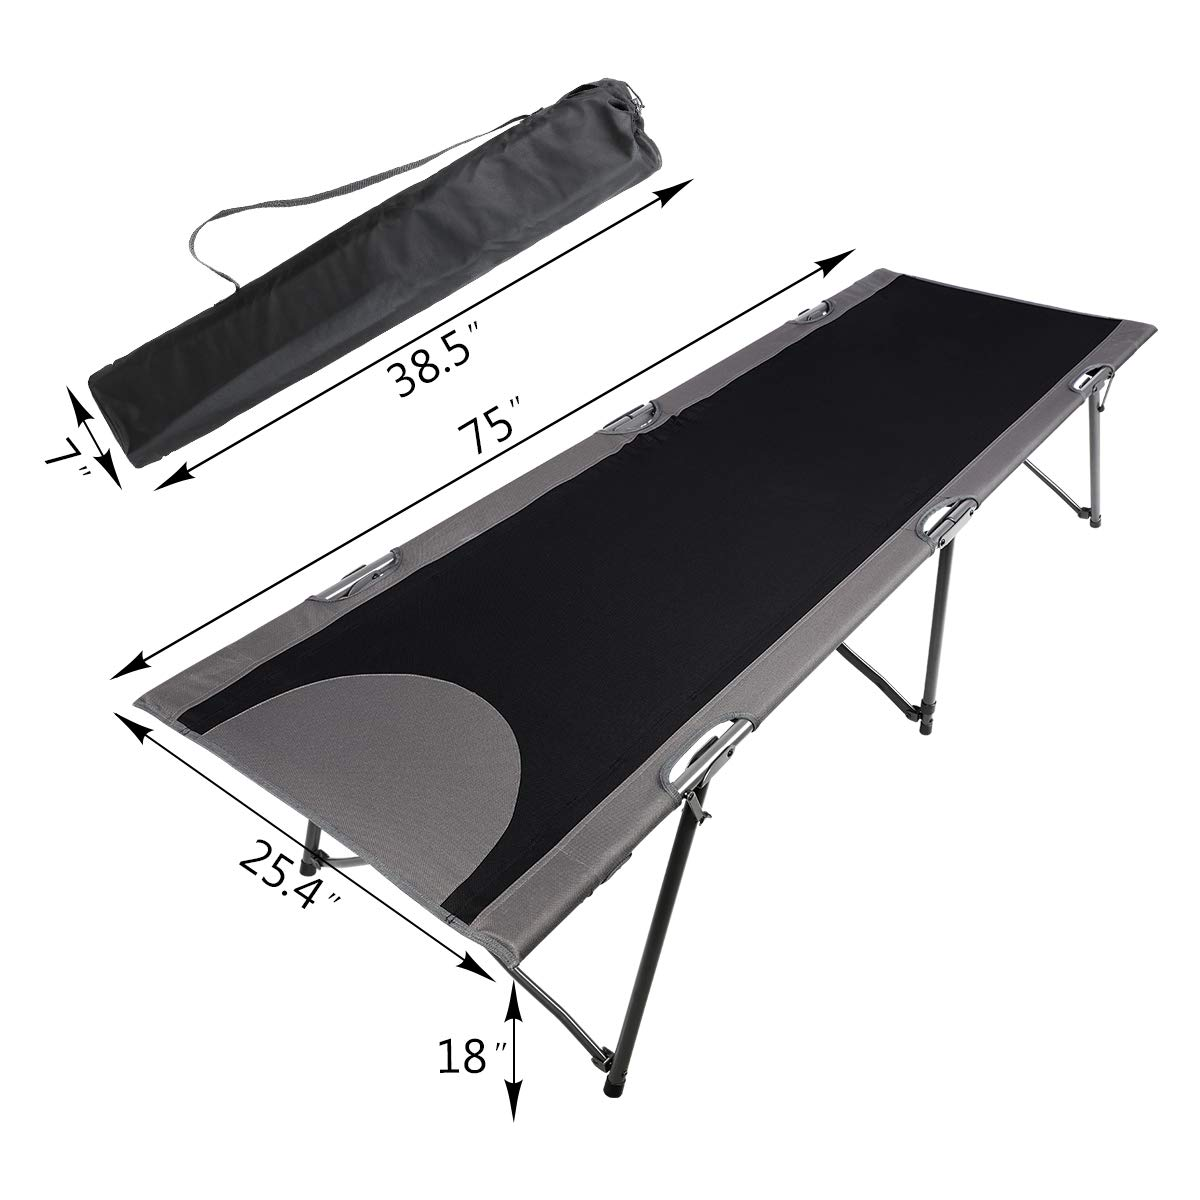 PORTAL Folding Portable Camping Cot Support 300lbs Travel Military Adult Cot Bed with Carry Bag